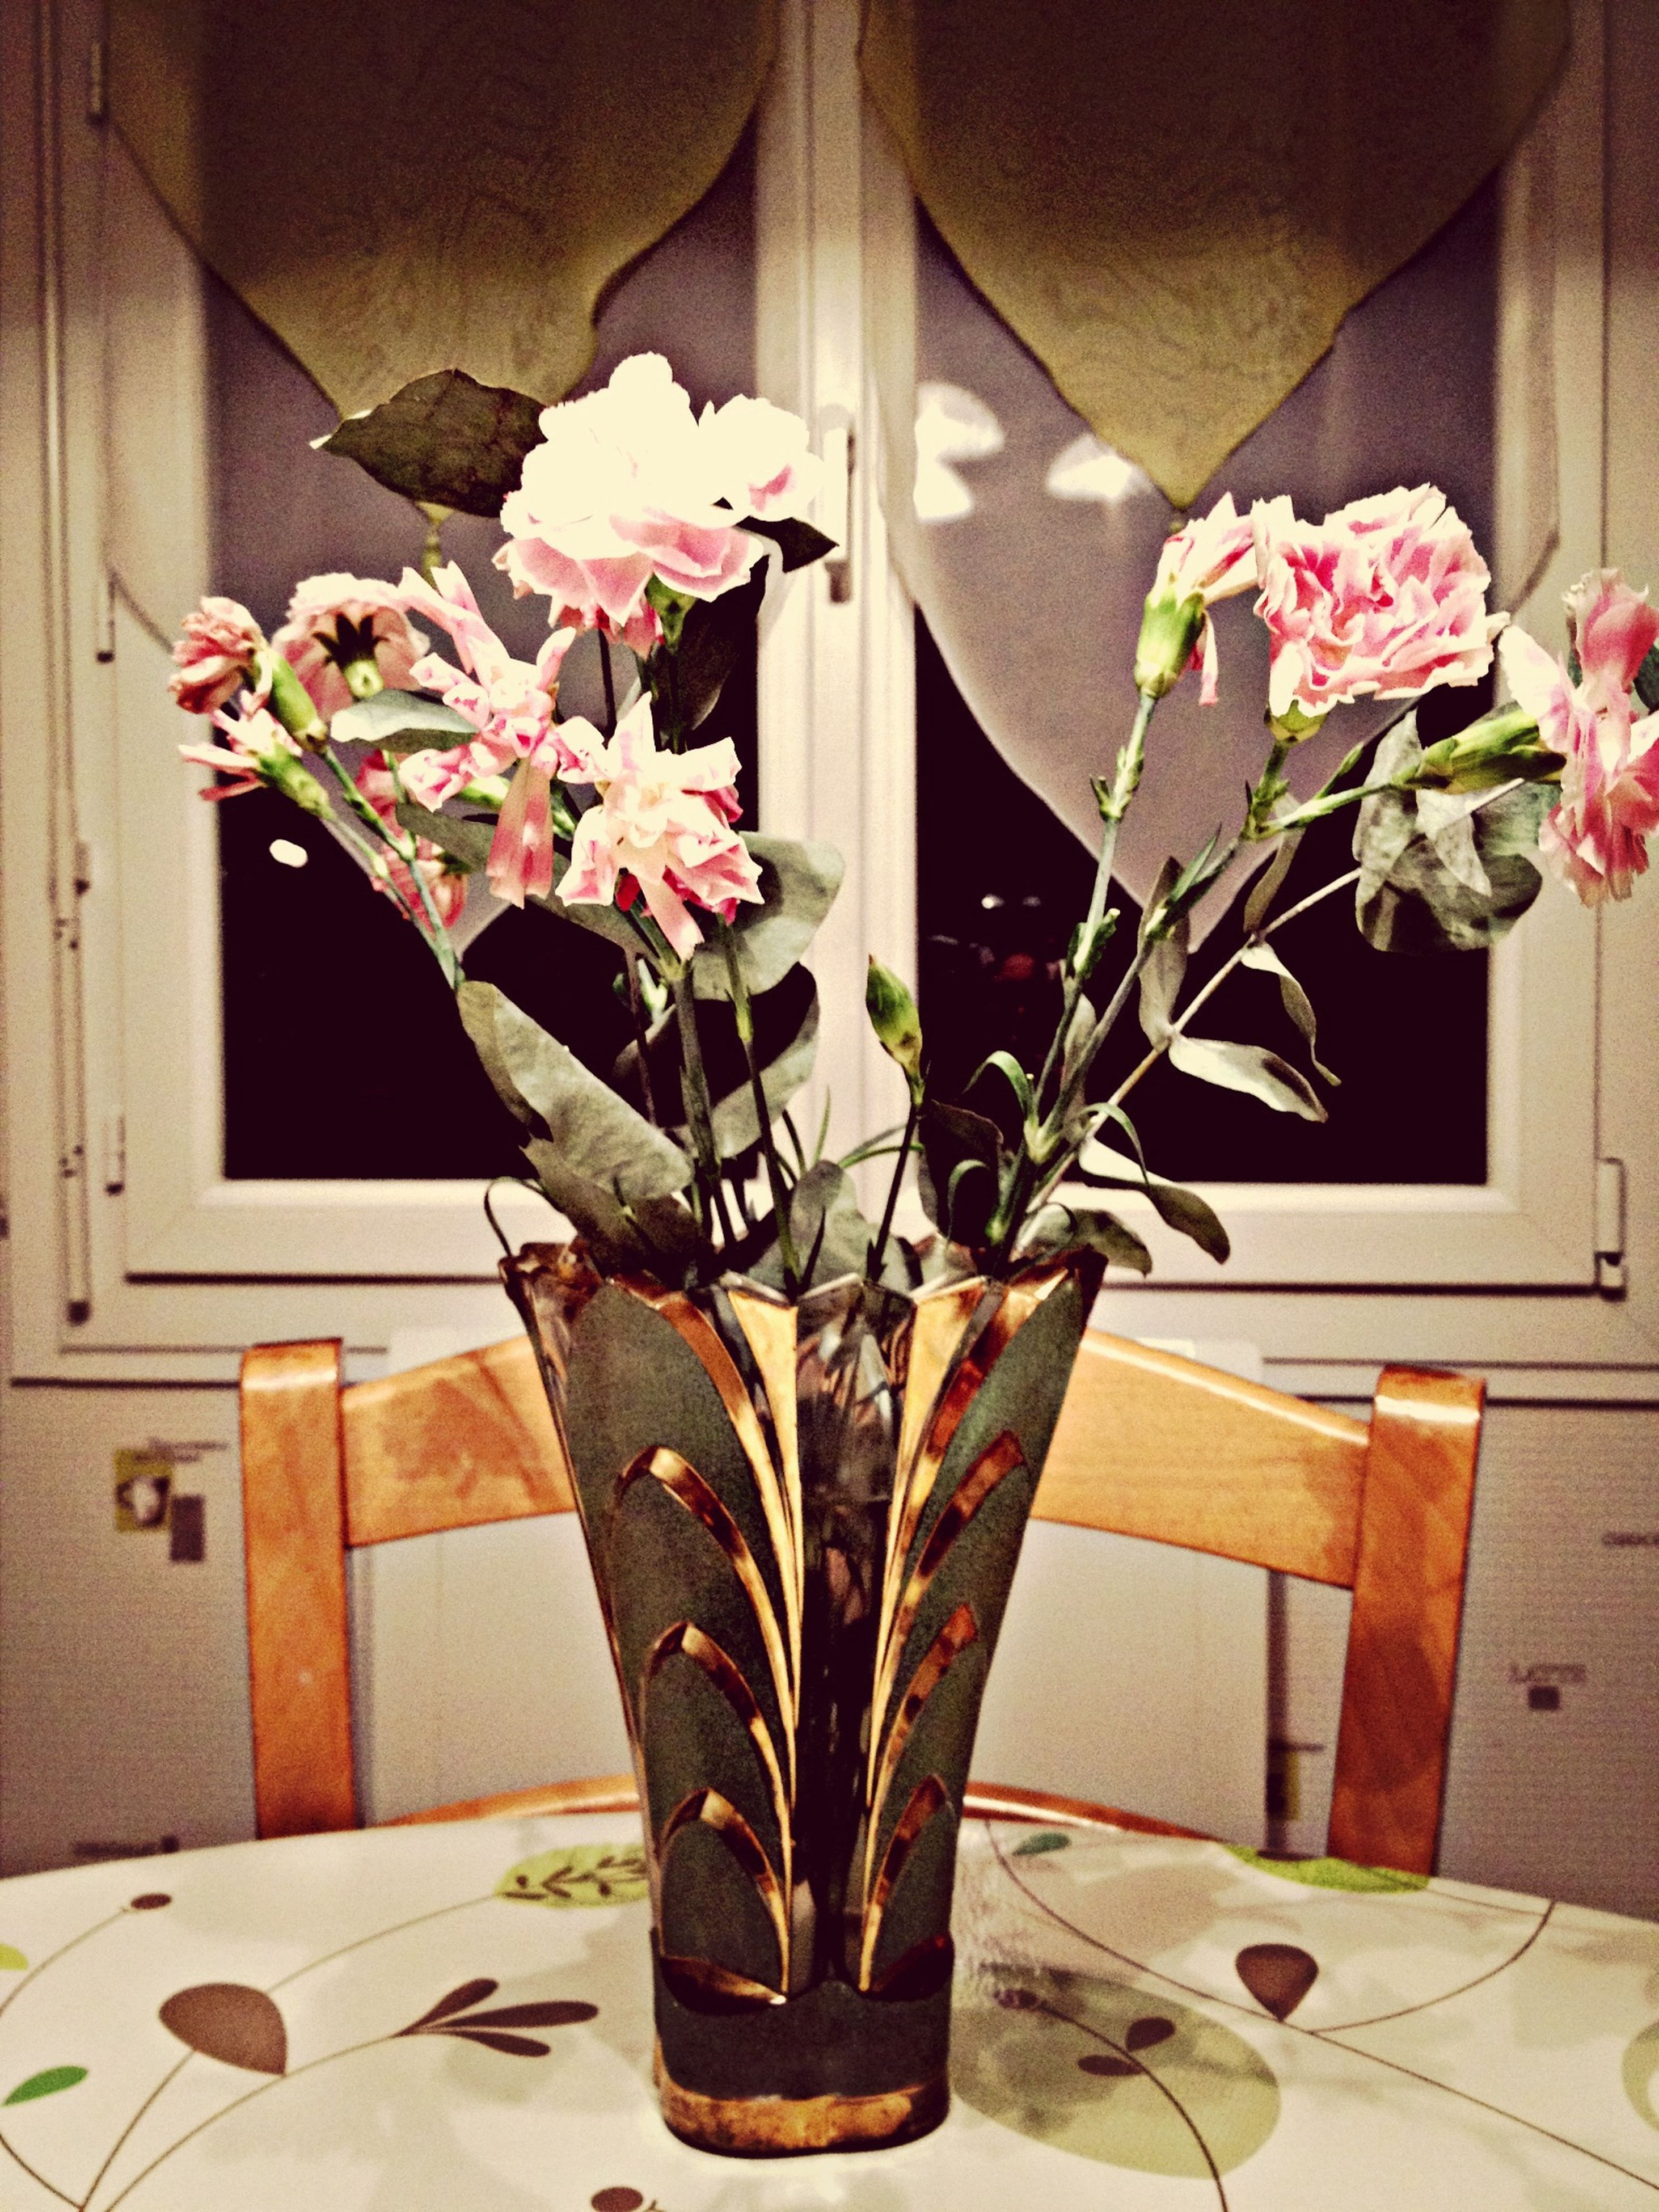 flower, indoors, potted plant, table, home interior, vase, high angle view, fragility, house, plant, freshness, wood - material, petal, growth, chair, no people, flower pot, leaf, bouquet, wall - building feature